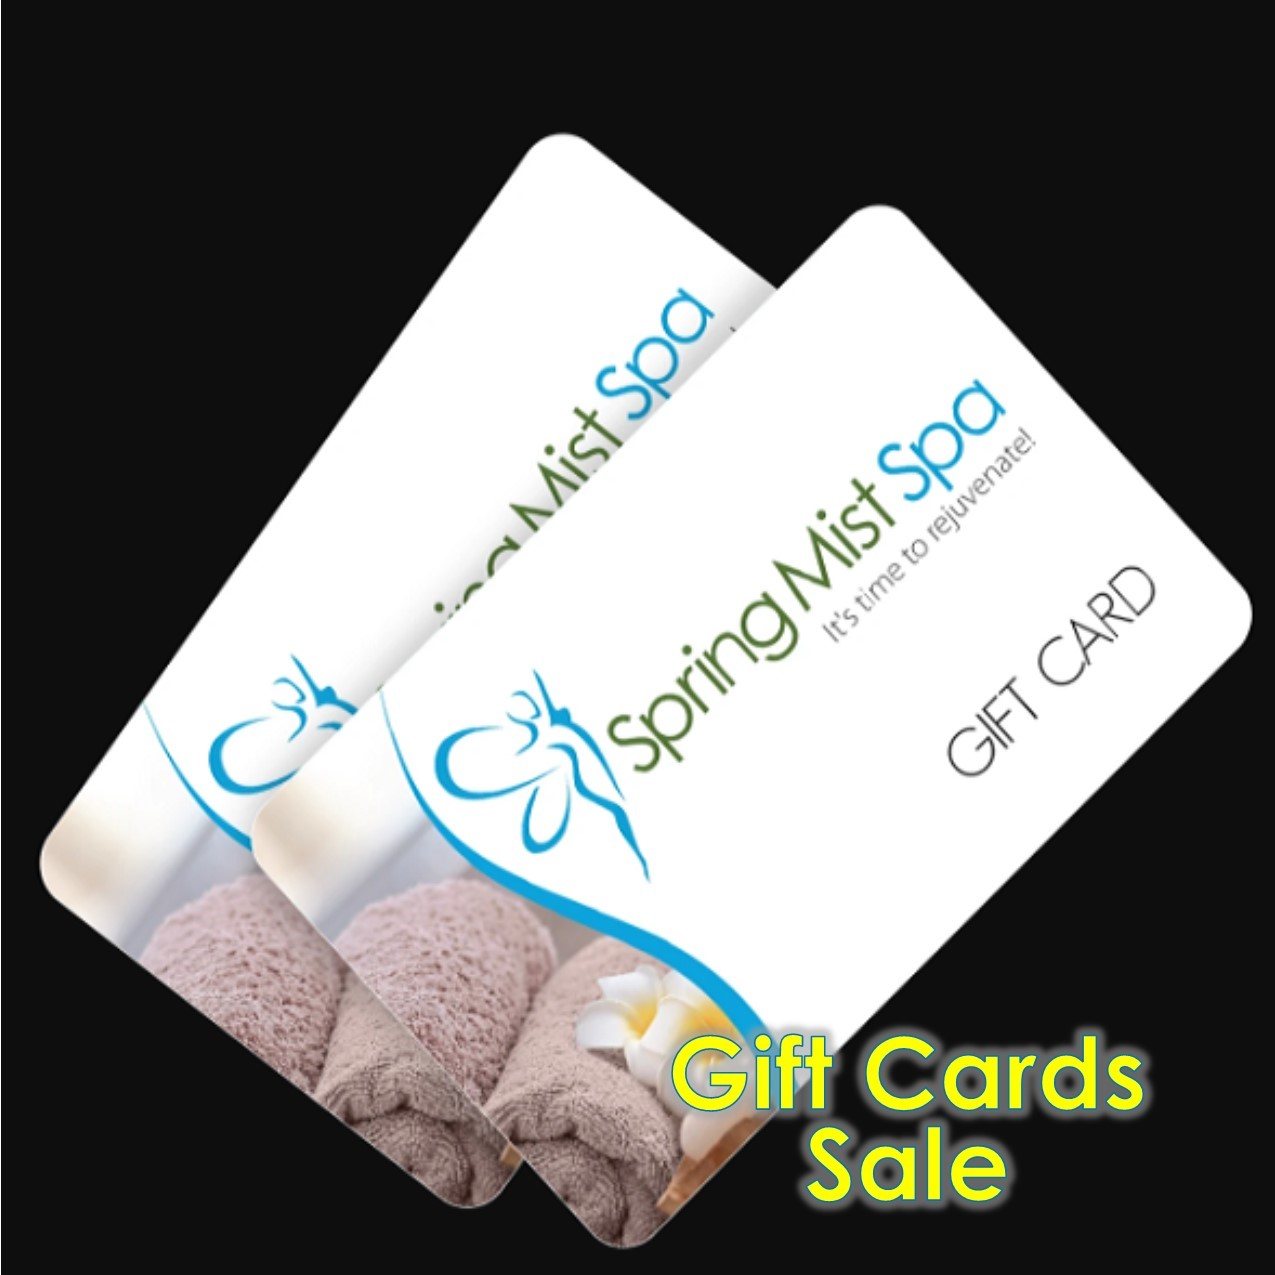 Mother's Day Gift Cards Certificates at Spring Mist Spa Milton